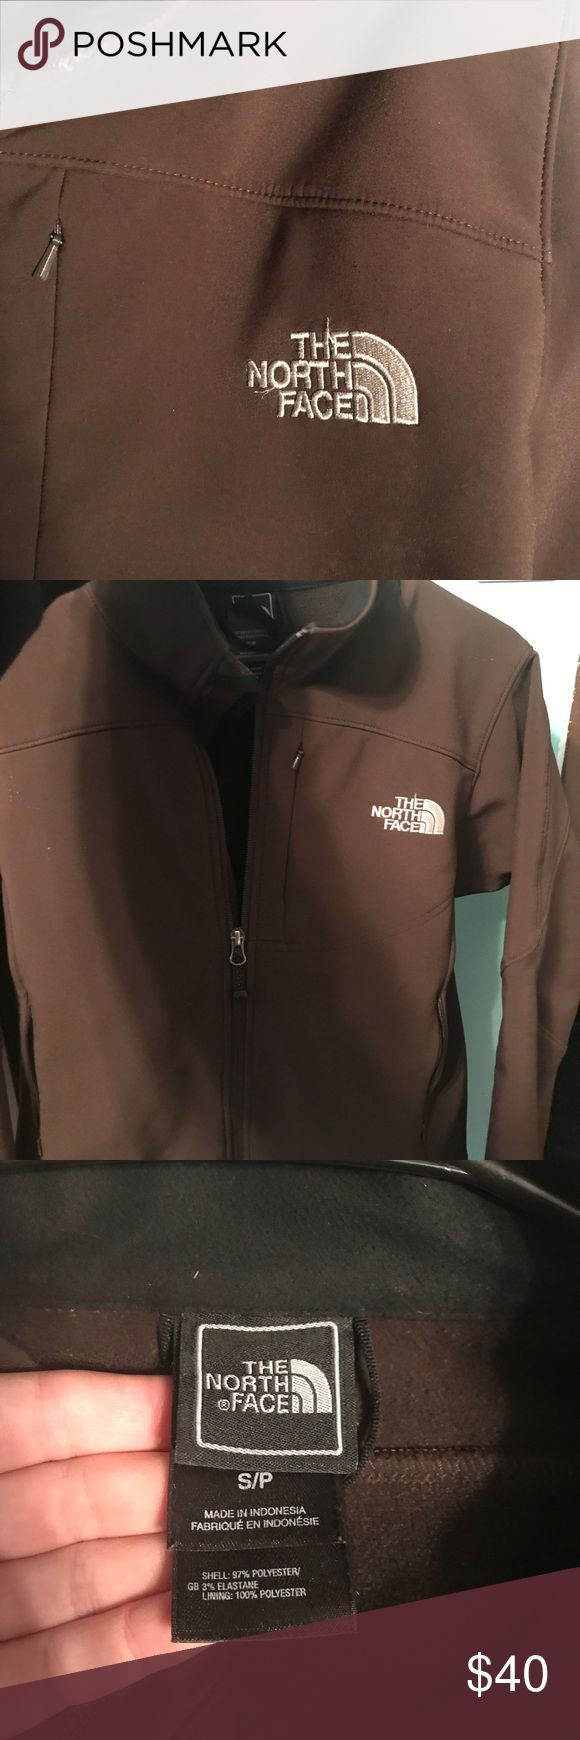 Women's North Face Jacket Women's size small! Brown. Excellent condition. No signs of wear. Held in a smoke free home. North Face Jackets & Coats